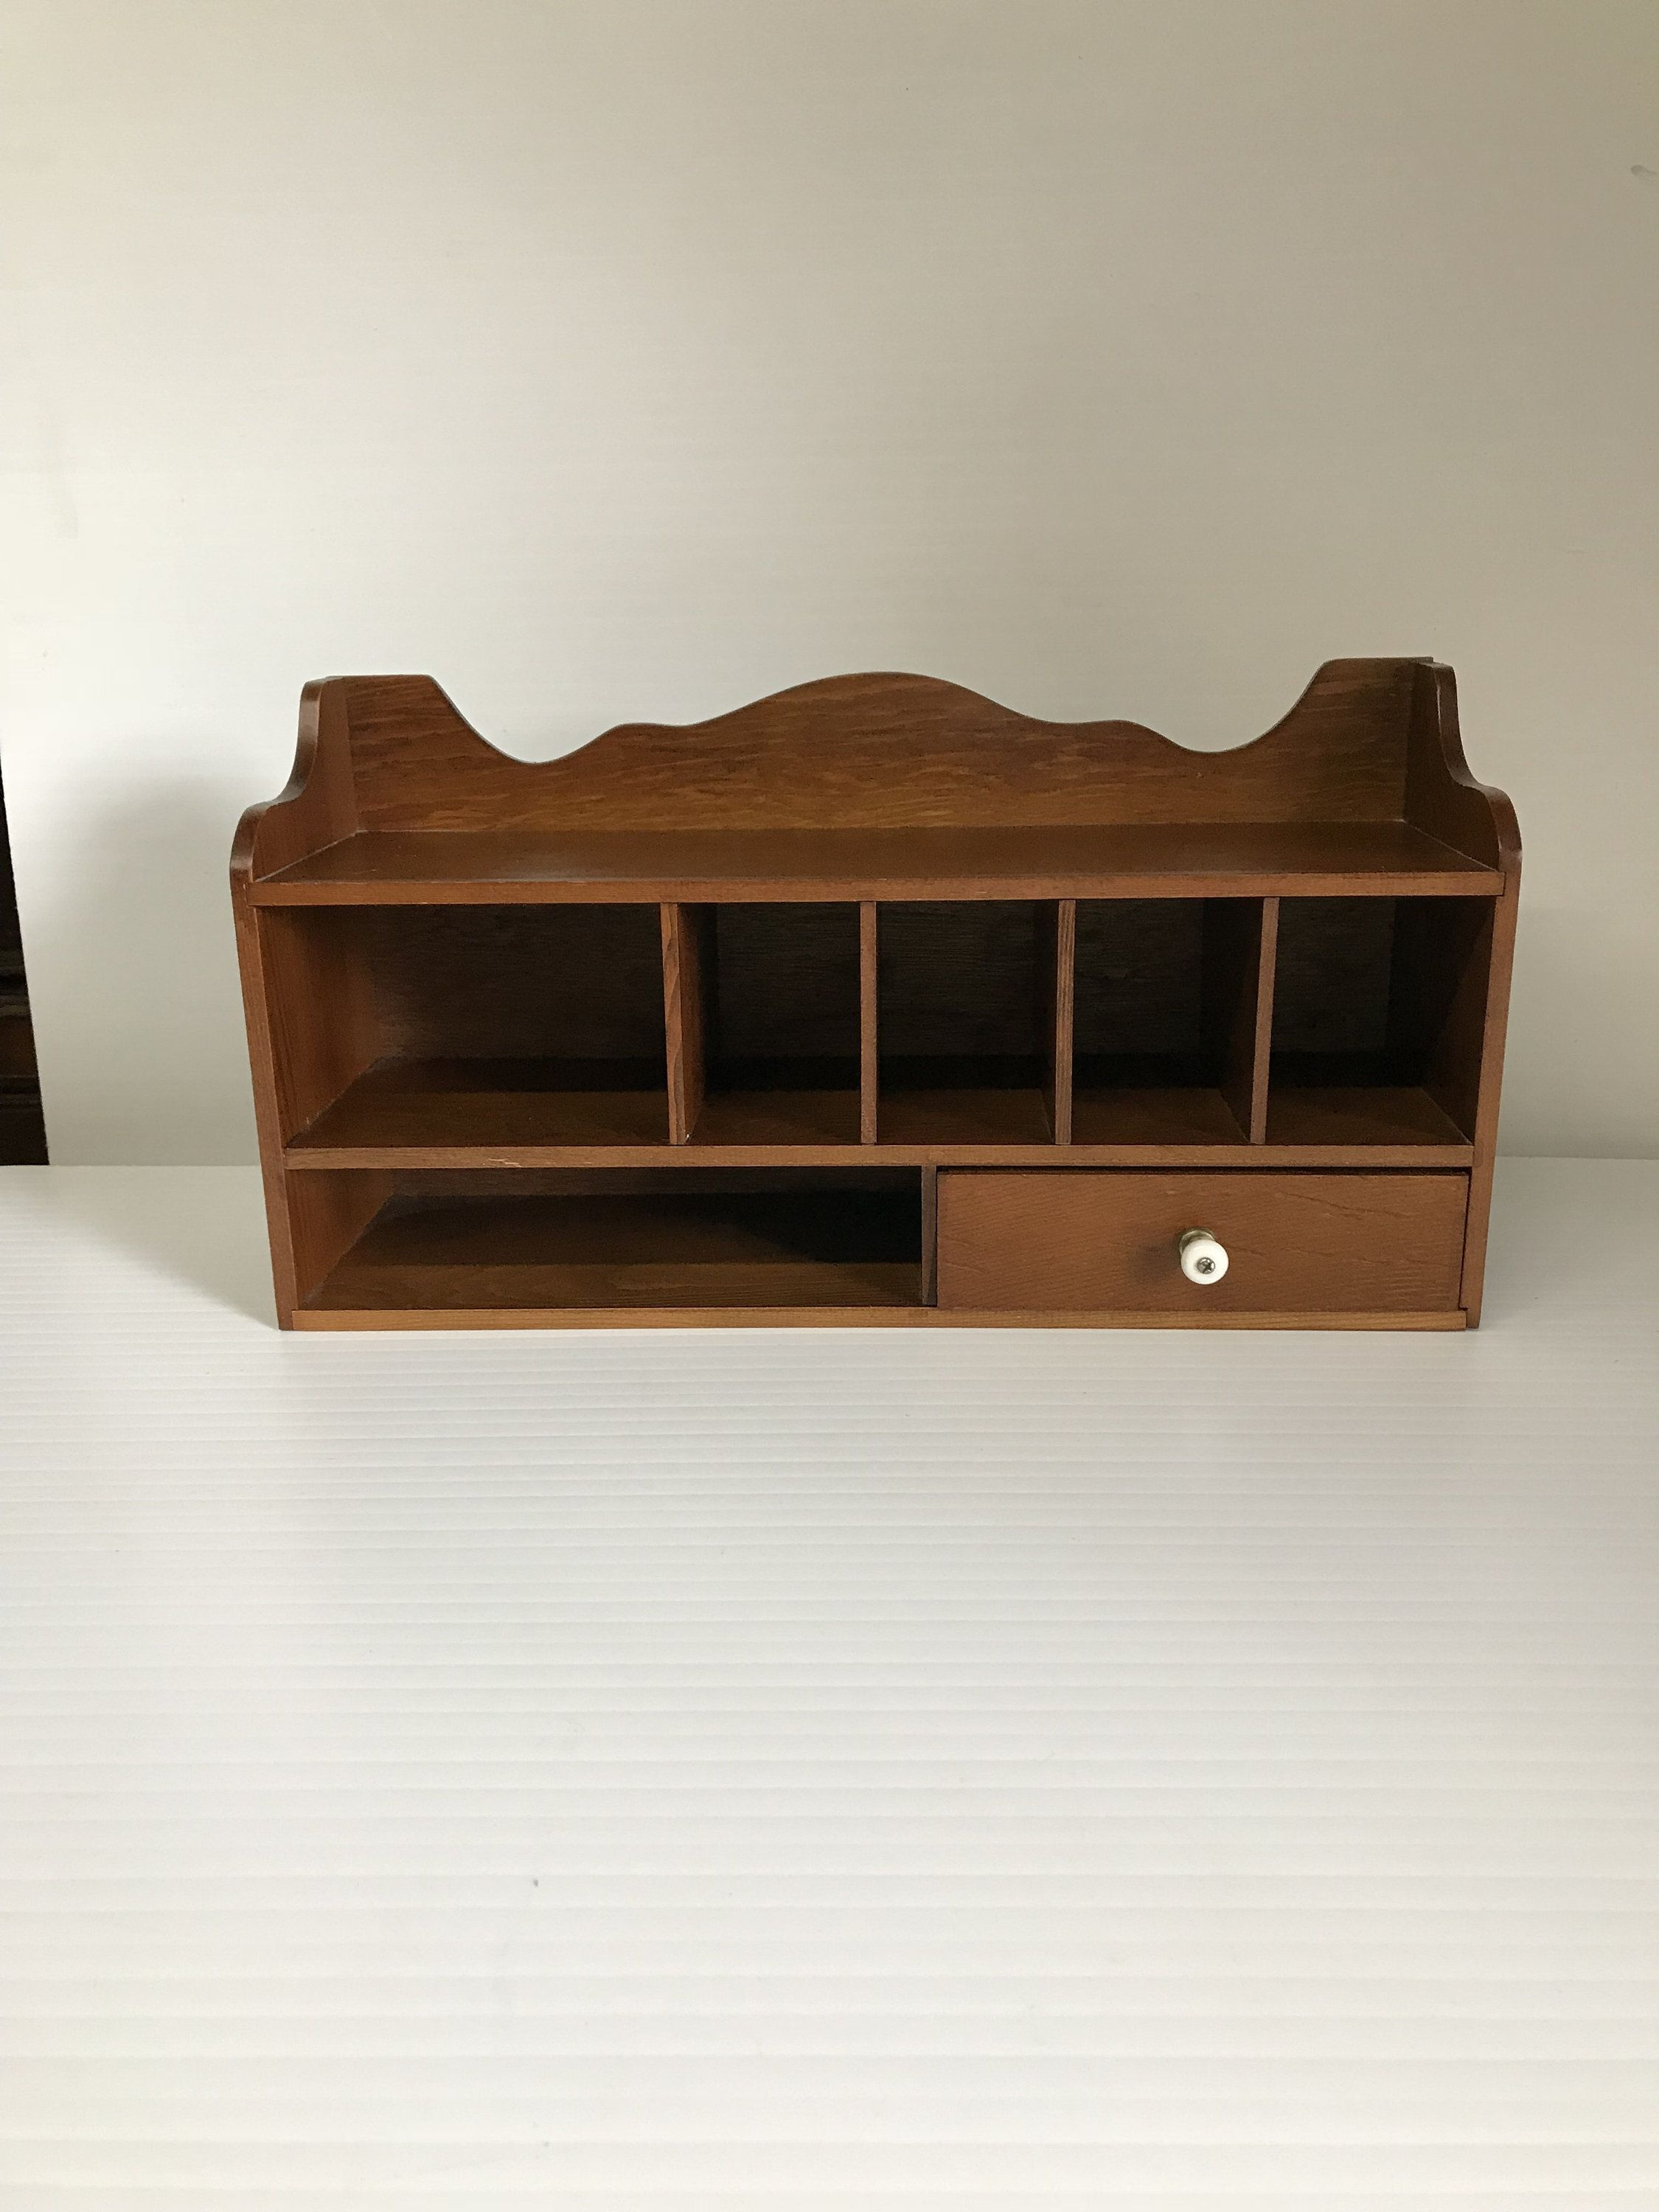 Vintage Desk Cubby Wood Wall Mount Top Organizer Post Office Slot